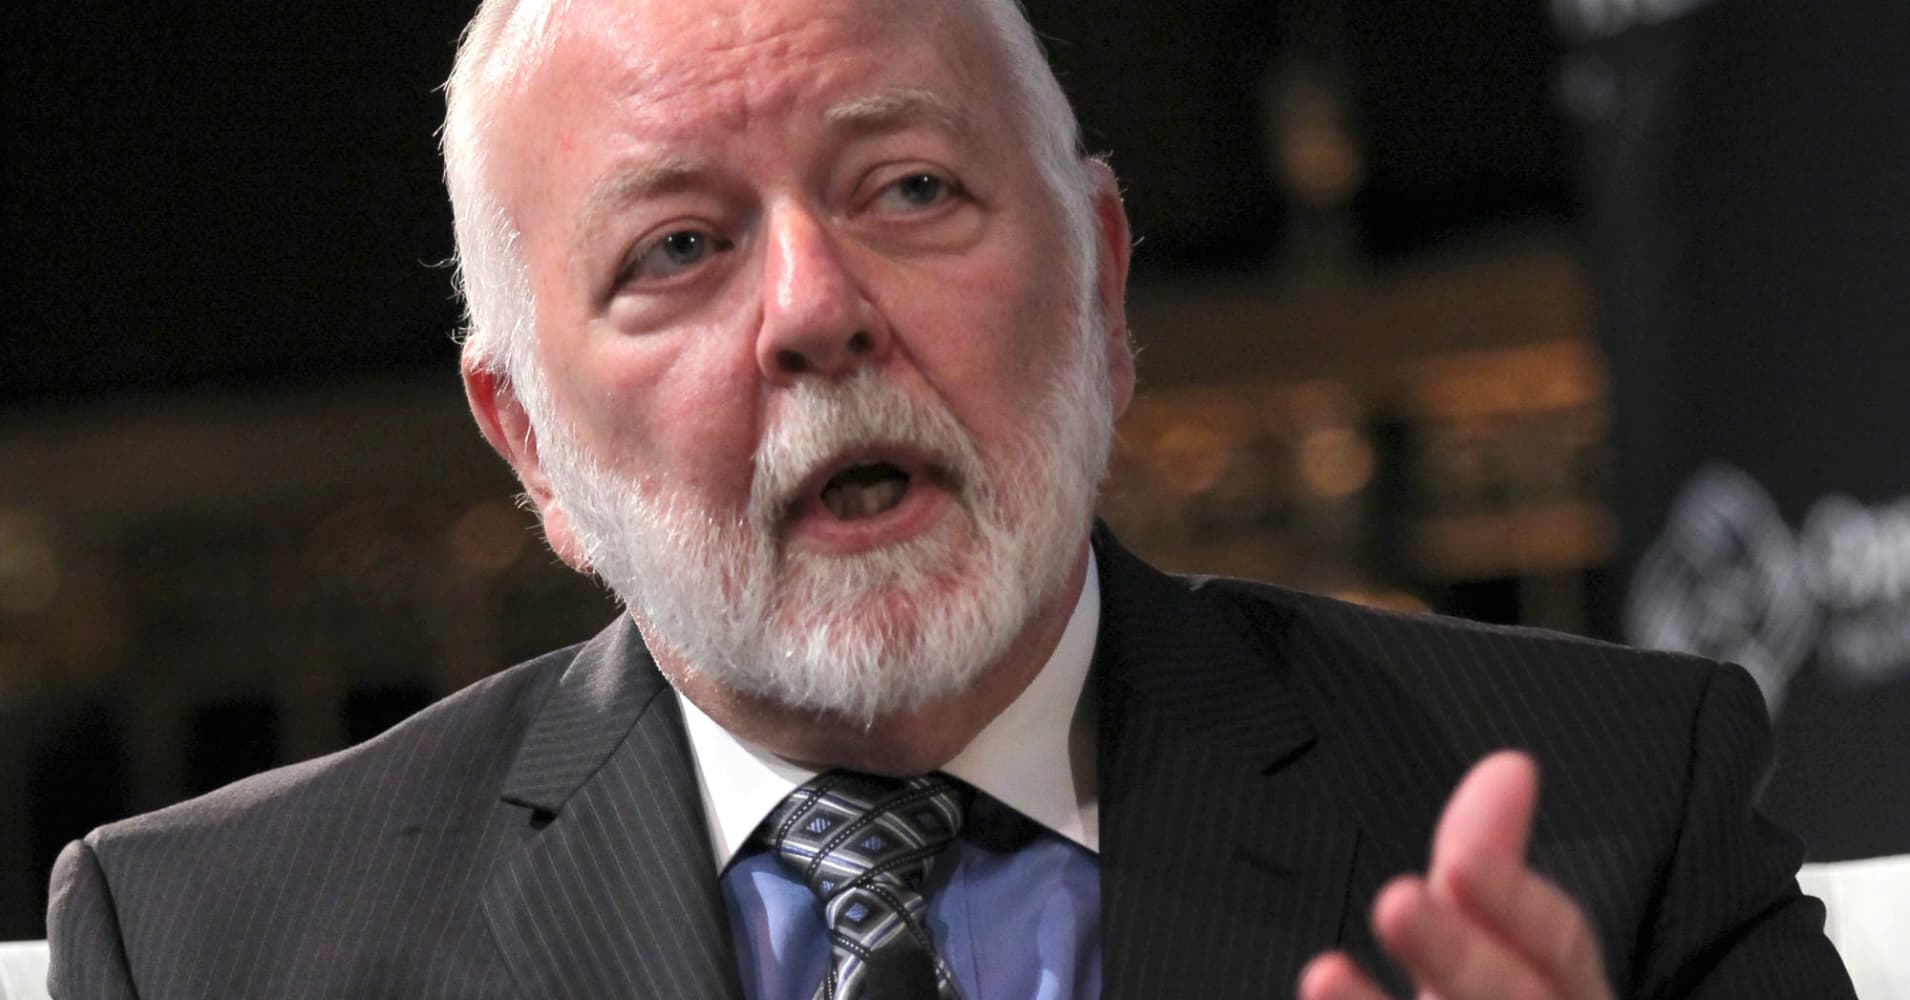 Bank analyst Dick Bove says sell Goldman Sachs: 'Legal issues are just beginning'